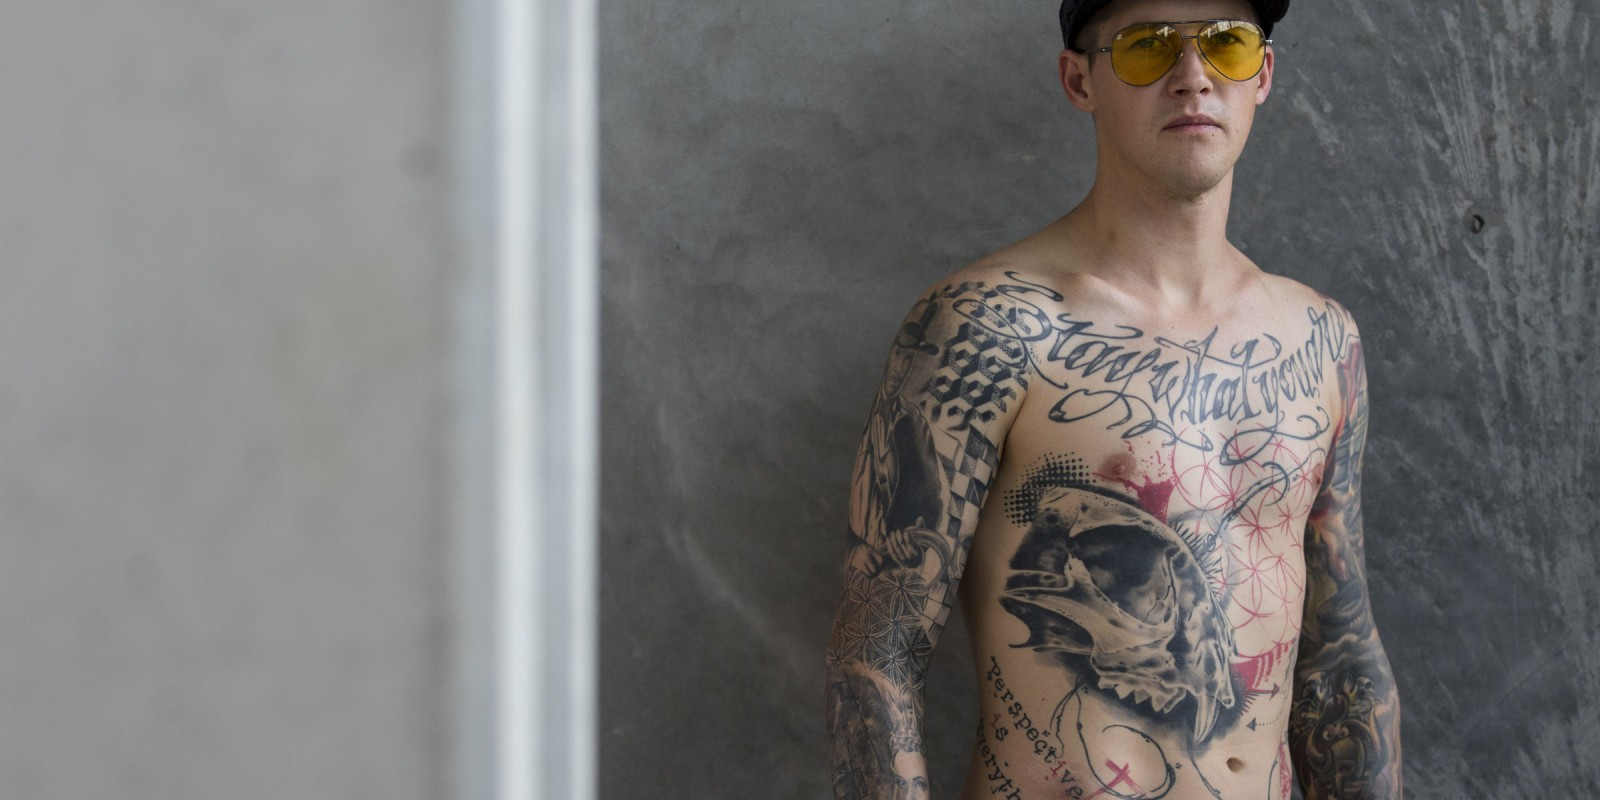 MyInk athlete tattoo blog series for Monster Energy website